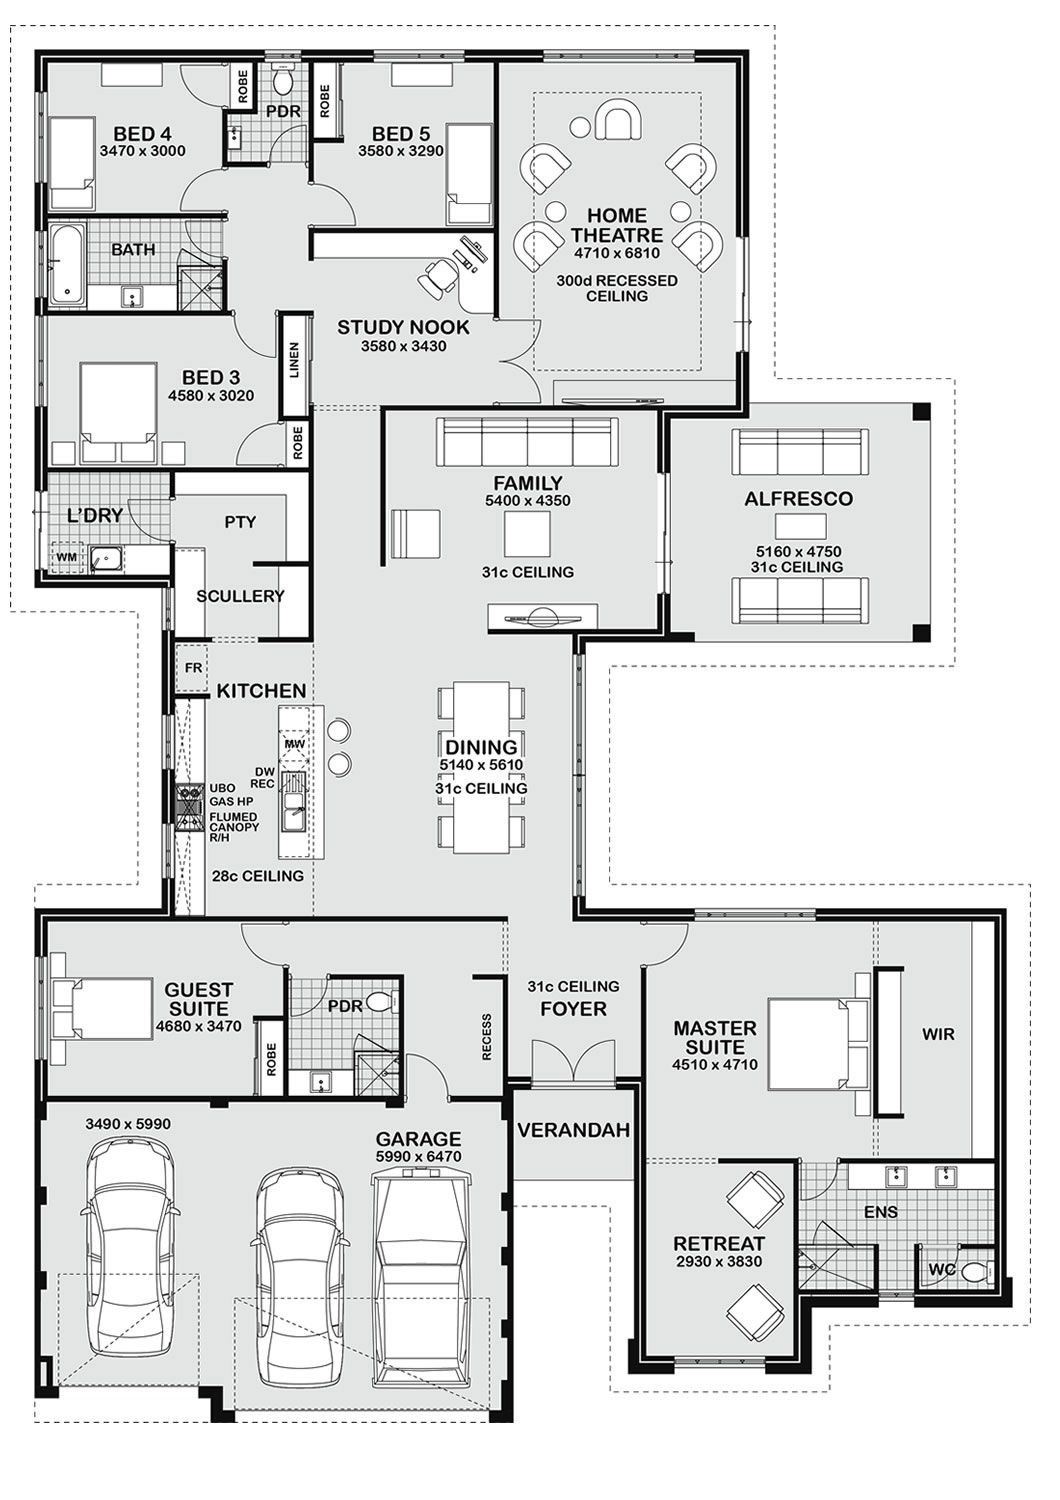 House Plans for Building Unique Floor Plan Friday 5 Bedroom Entertainer